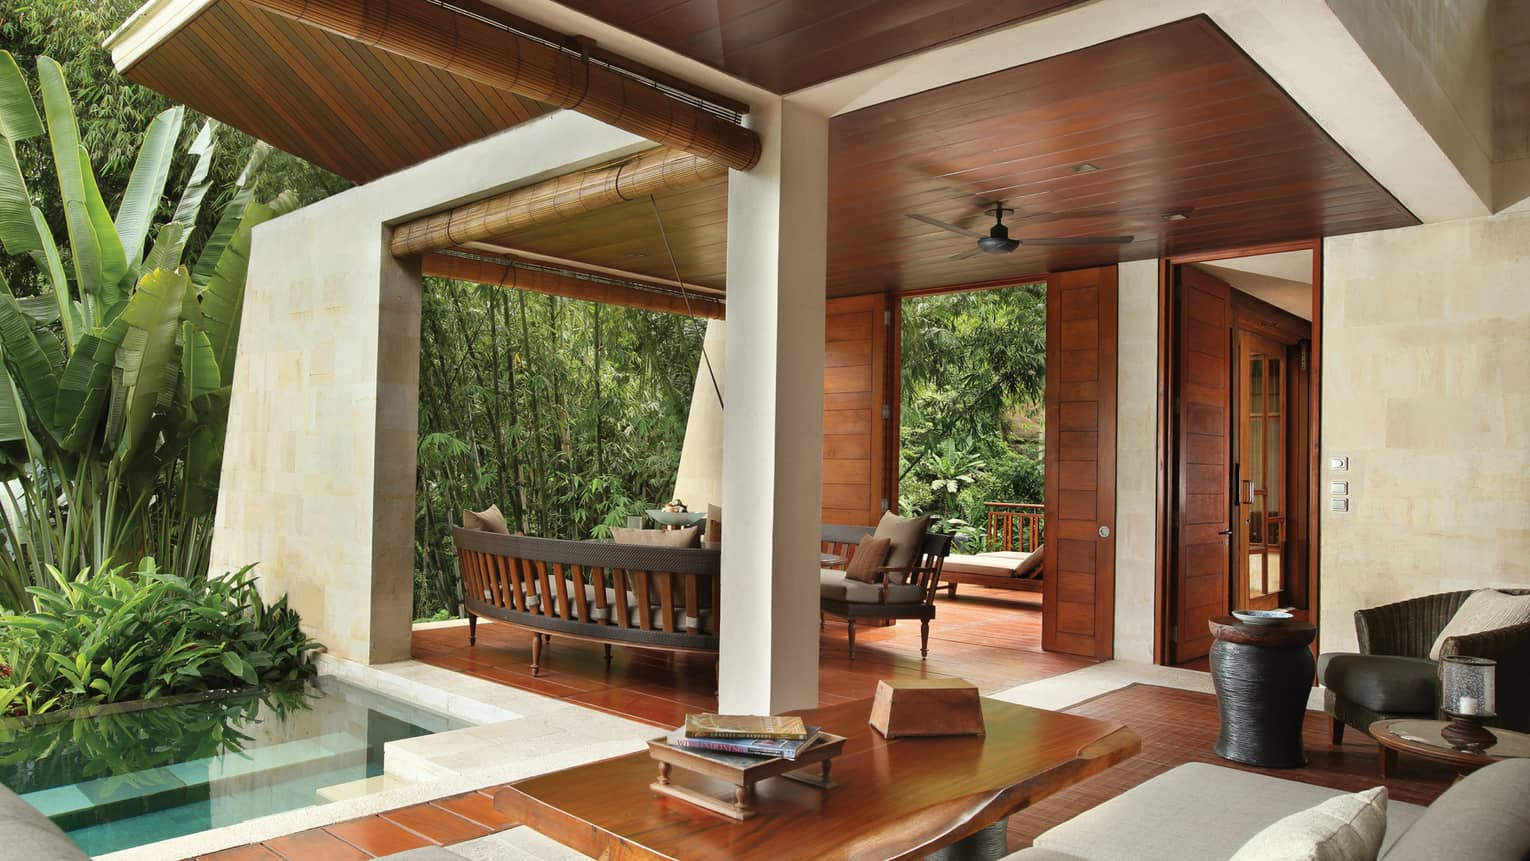 Private villa outdoor space with modern wood and concrete structure, plunge swimming pool, patio furniture and books on table